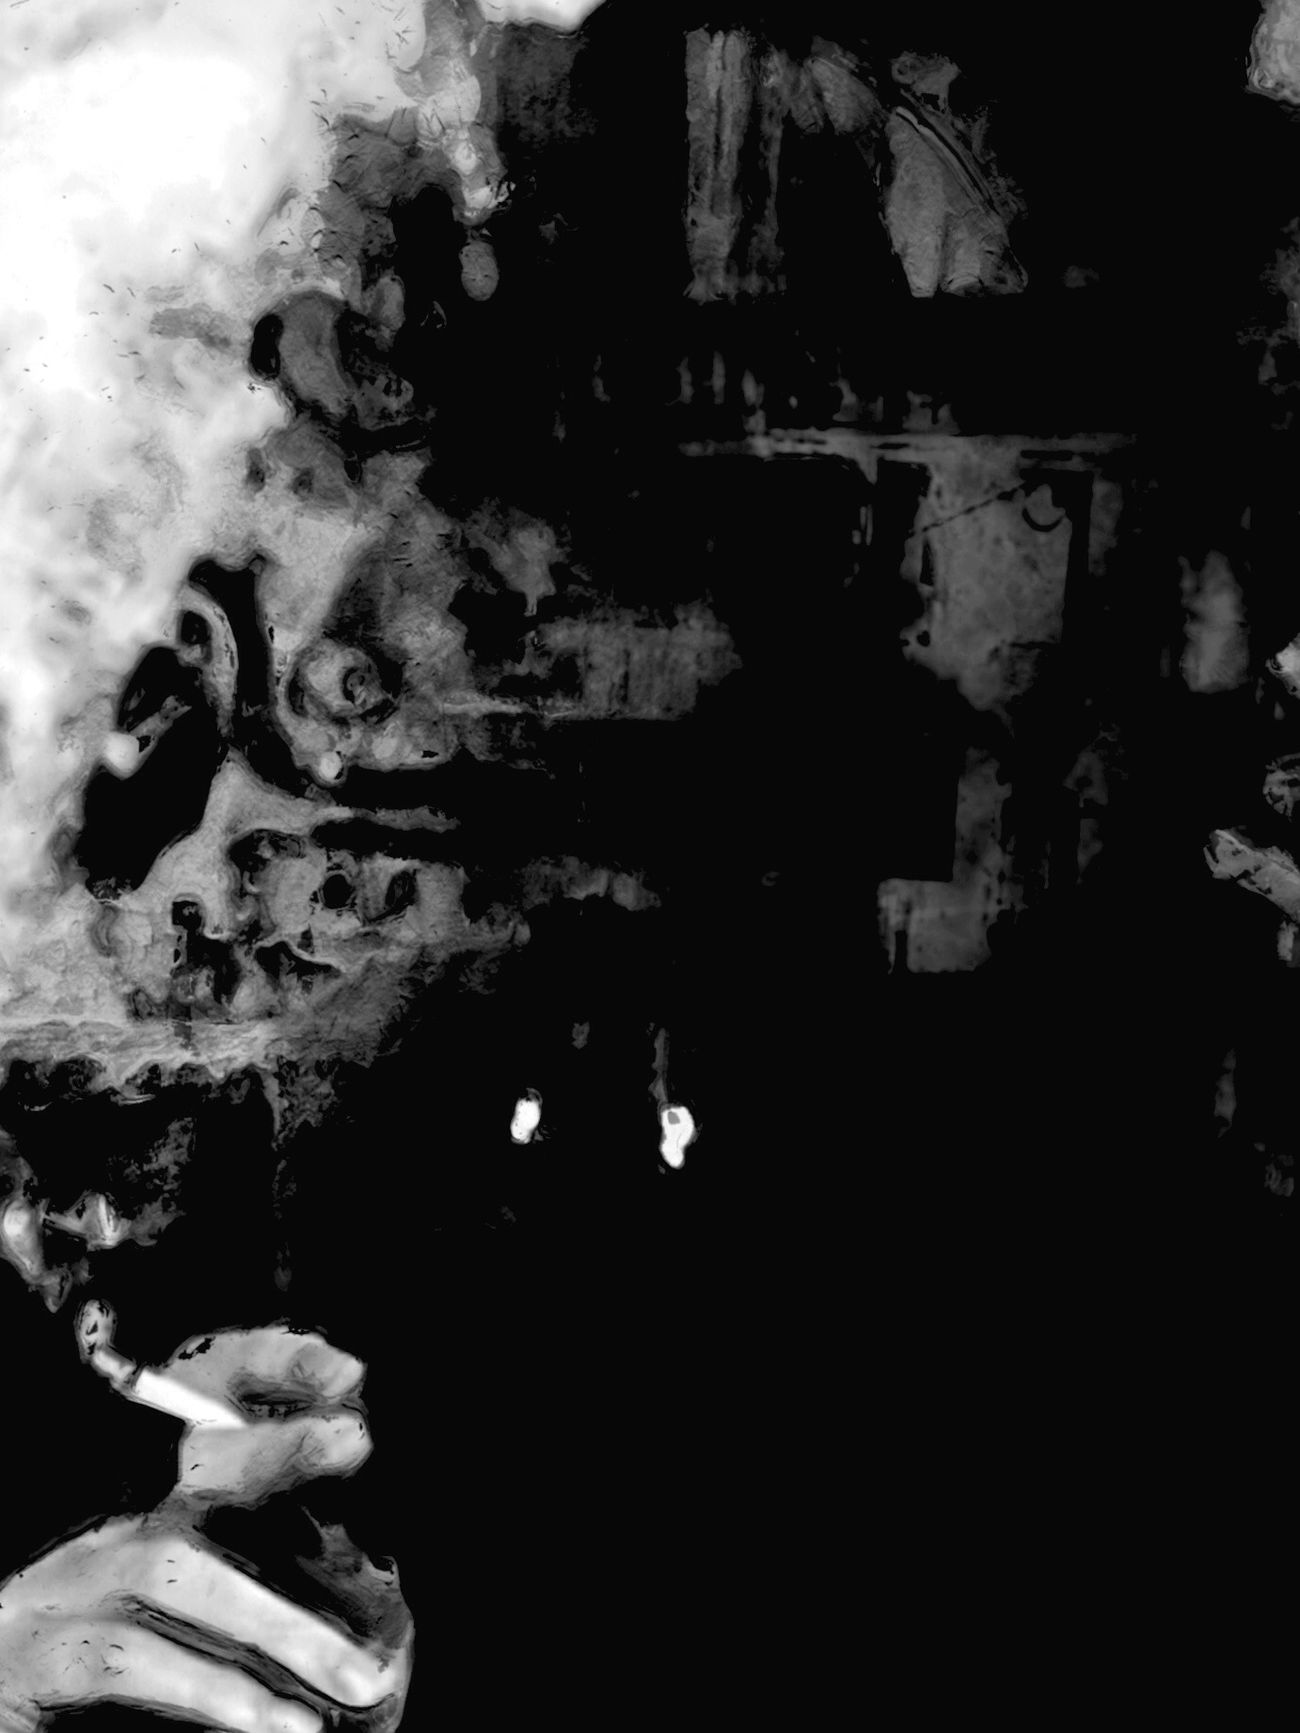 Autoportrait Noir Et Blanc Streetphotography Variation Entre Ombre Et Lumiere Power Point Smoke Looking For Water Textured  Canal Street